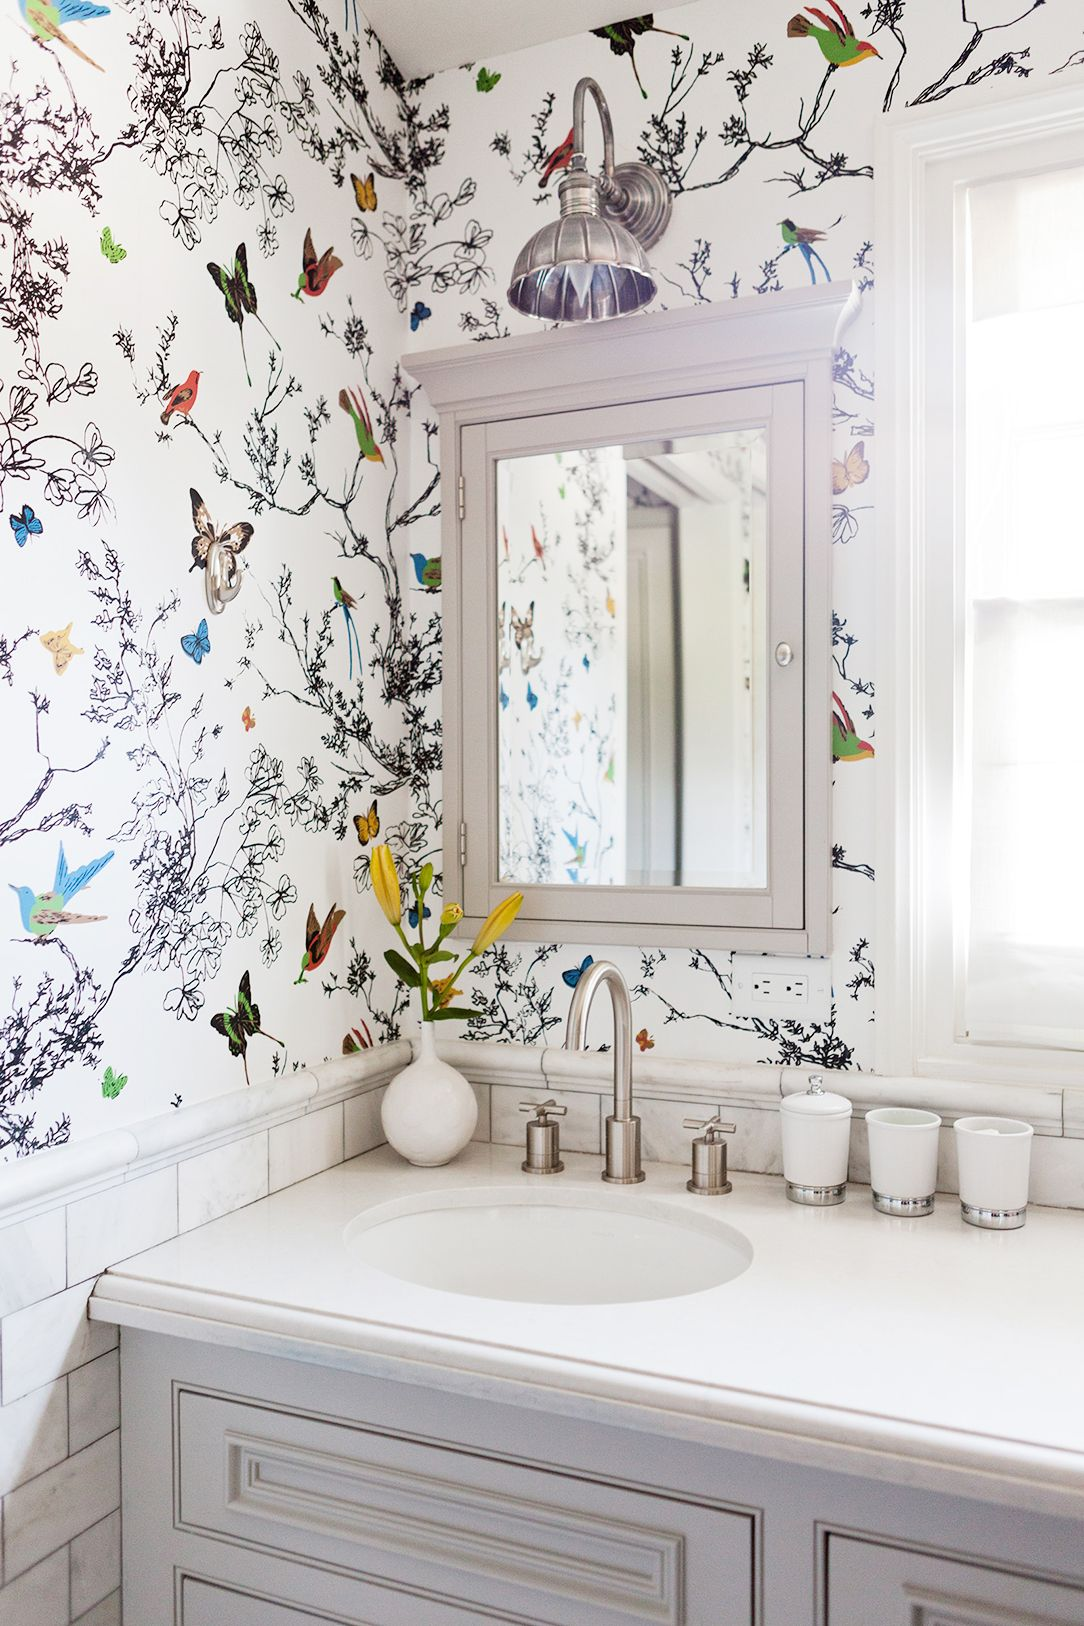 Wallpaper For Kitchen Walls Island Dining Table Home Tour A Youthful Whimsical L Bathrooms